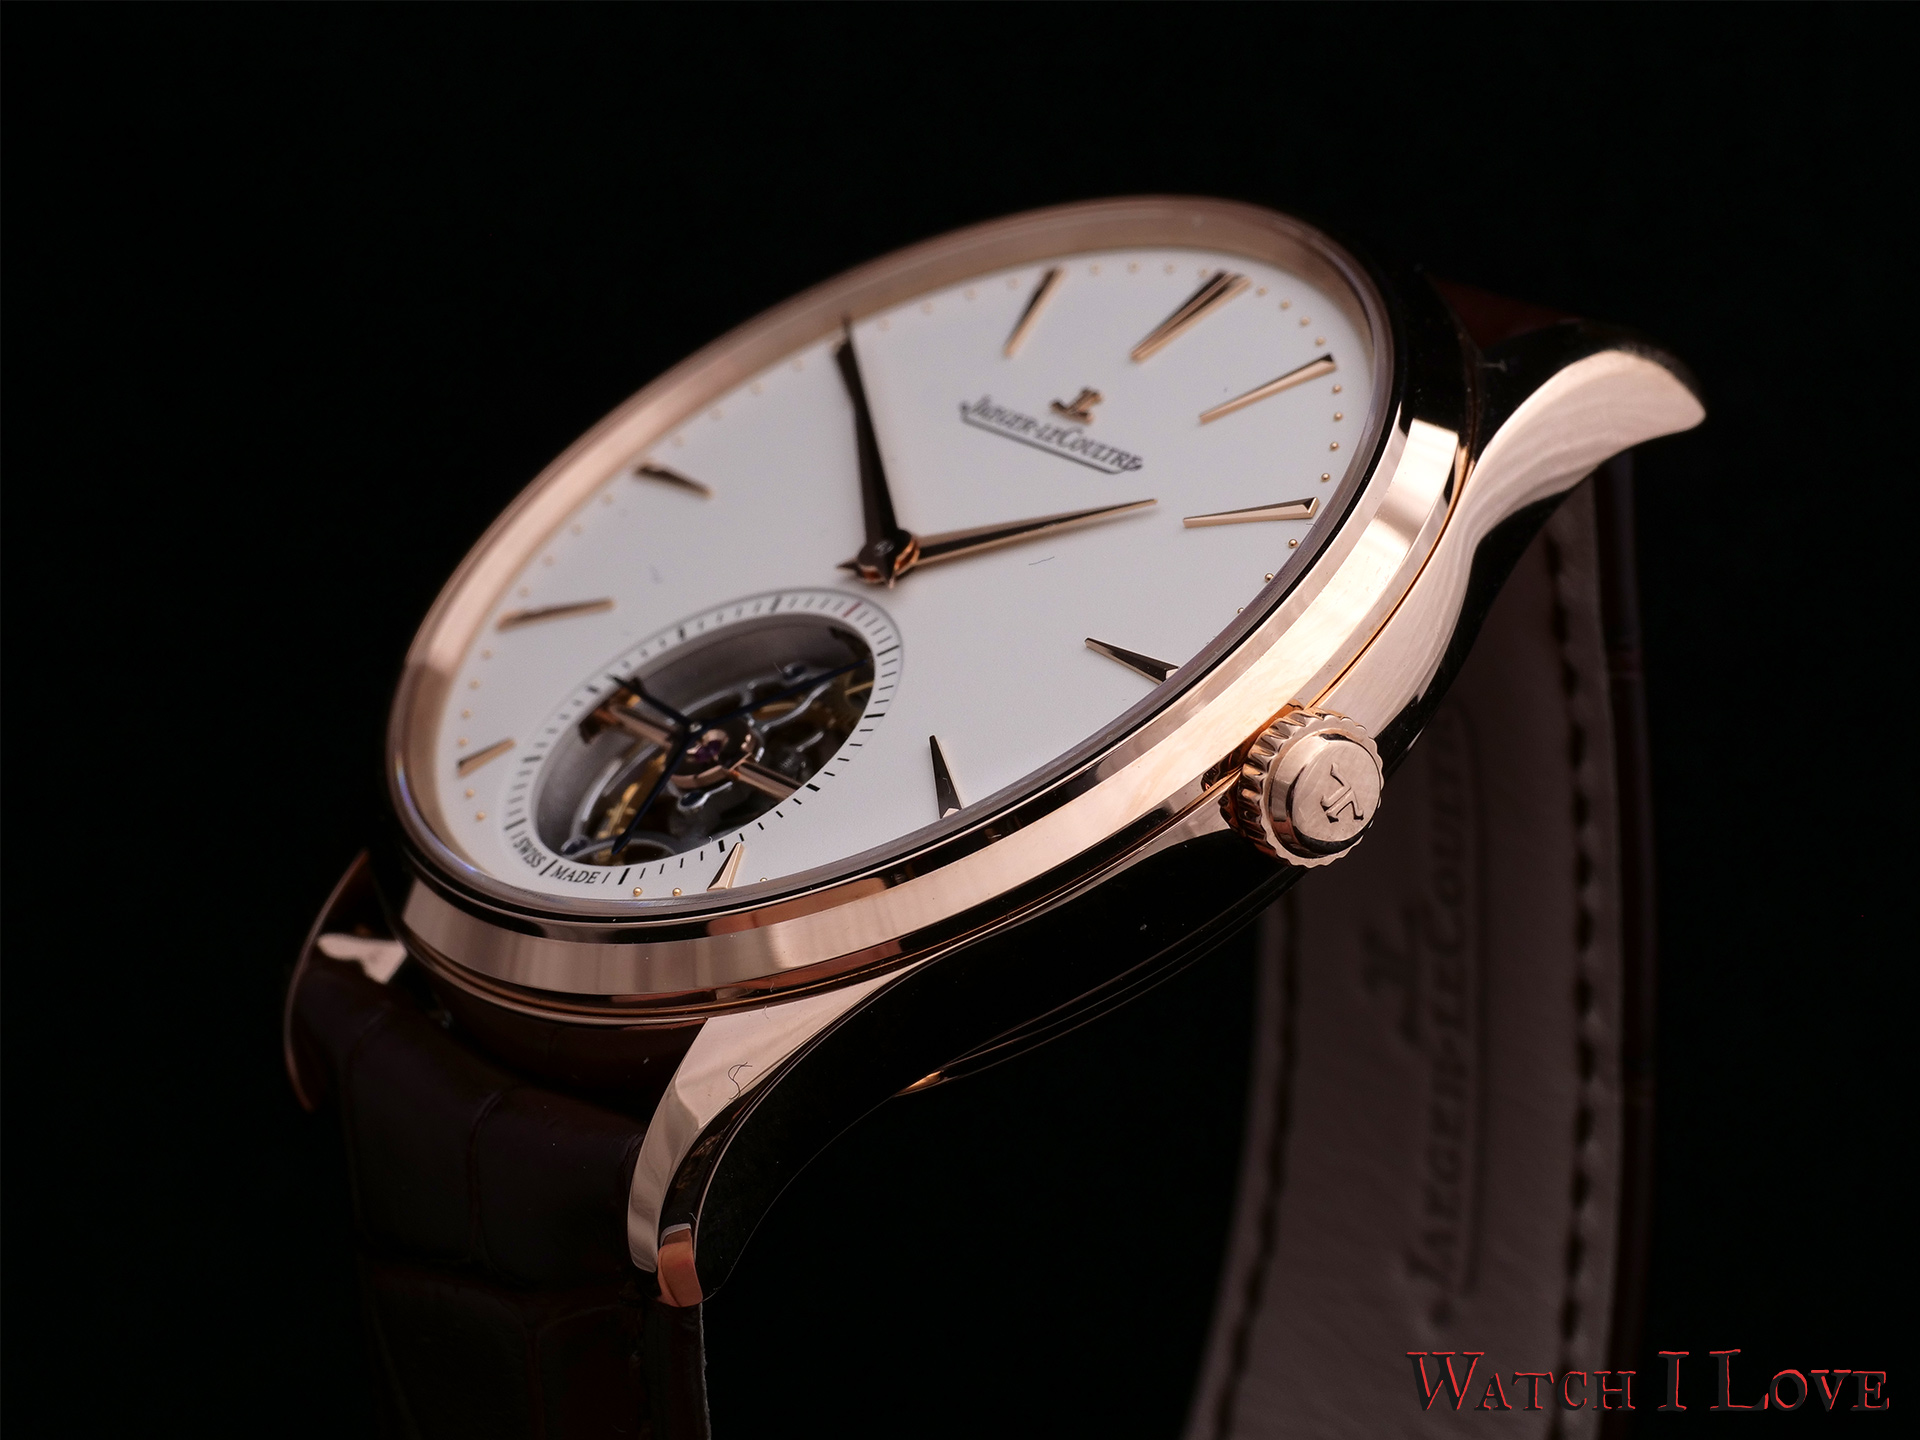 Ultra-Thin Tourbillon case and crown